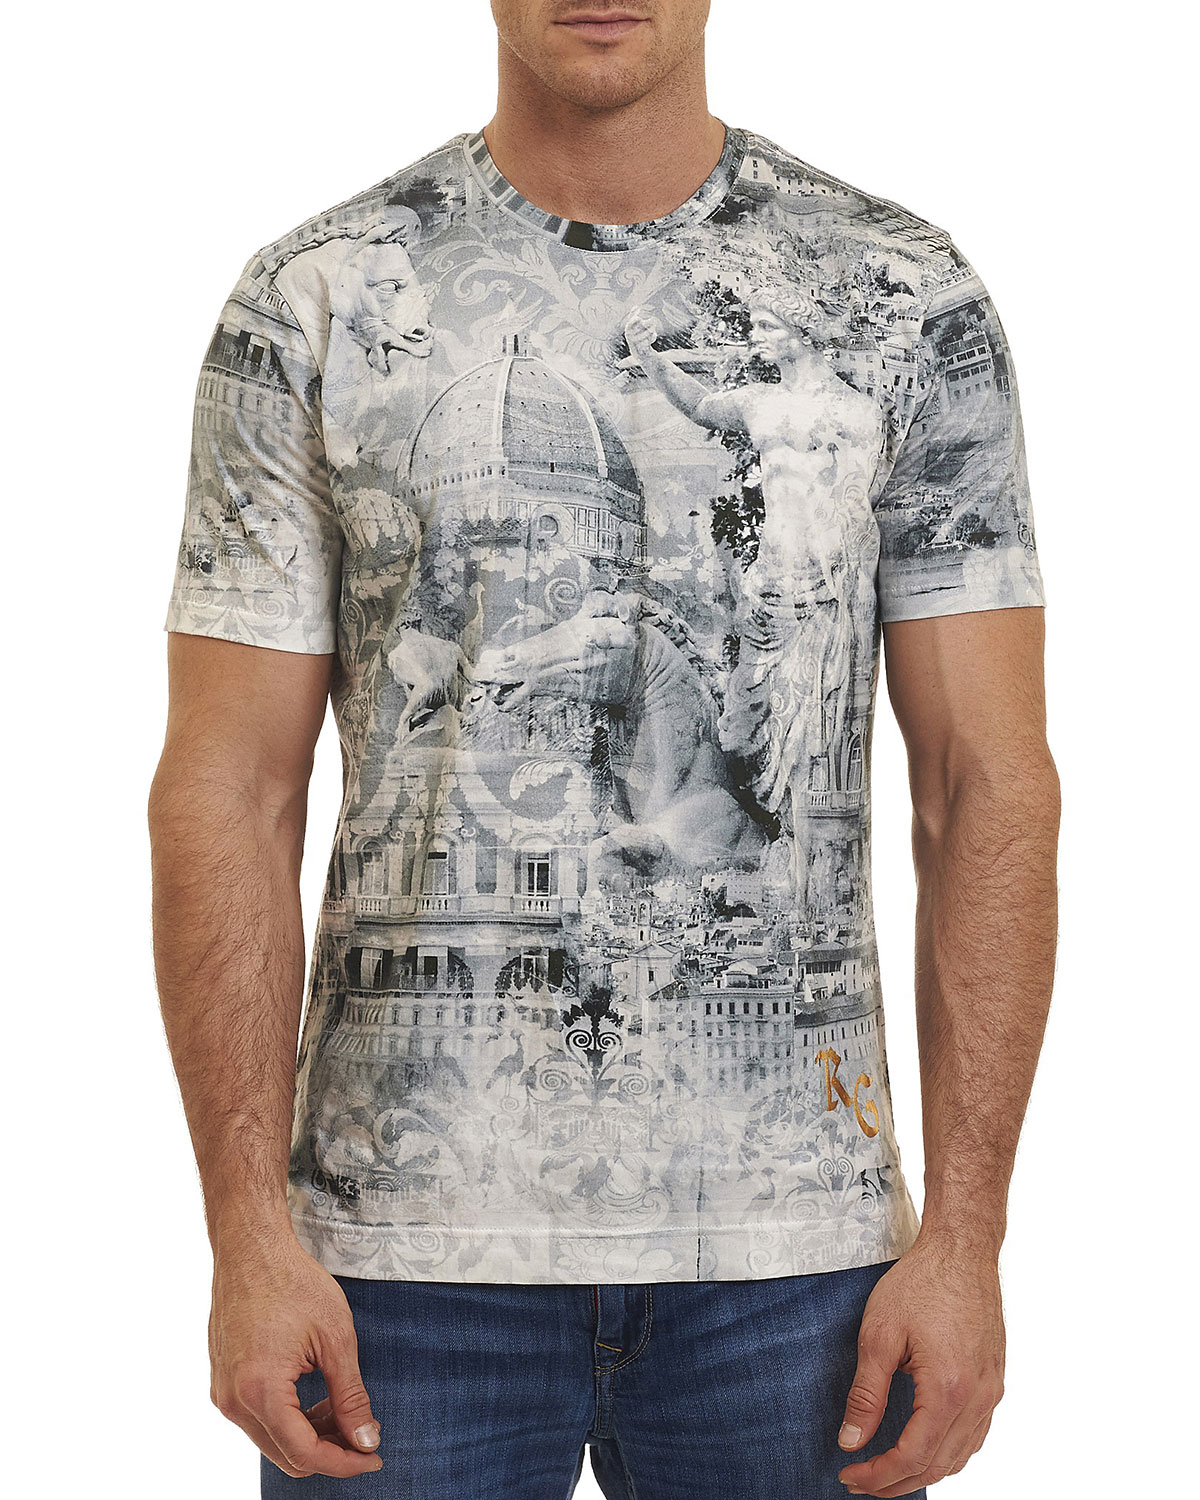 COLOSSEUM GRAPHIC TEE